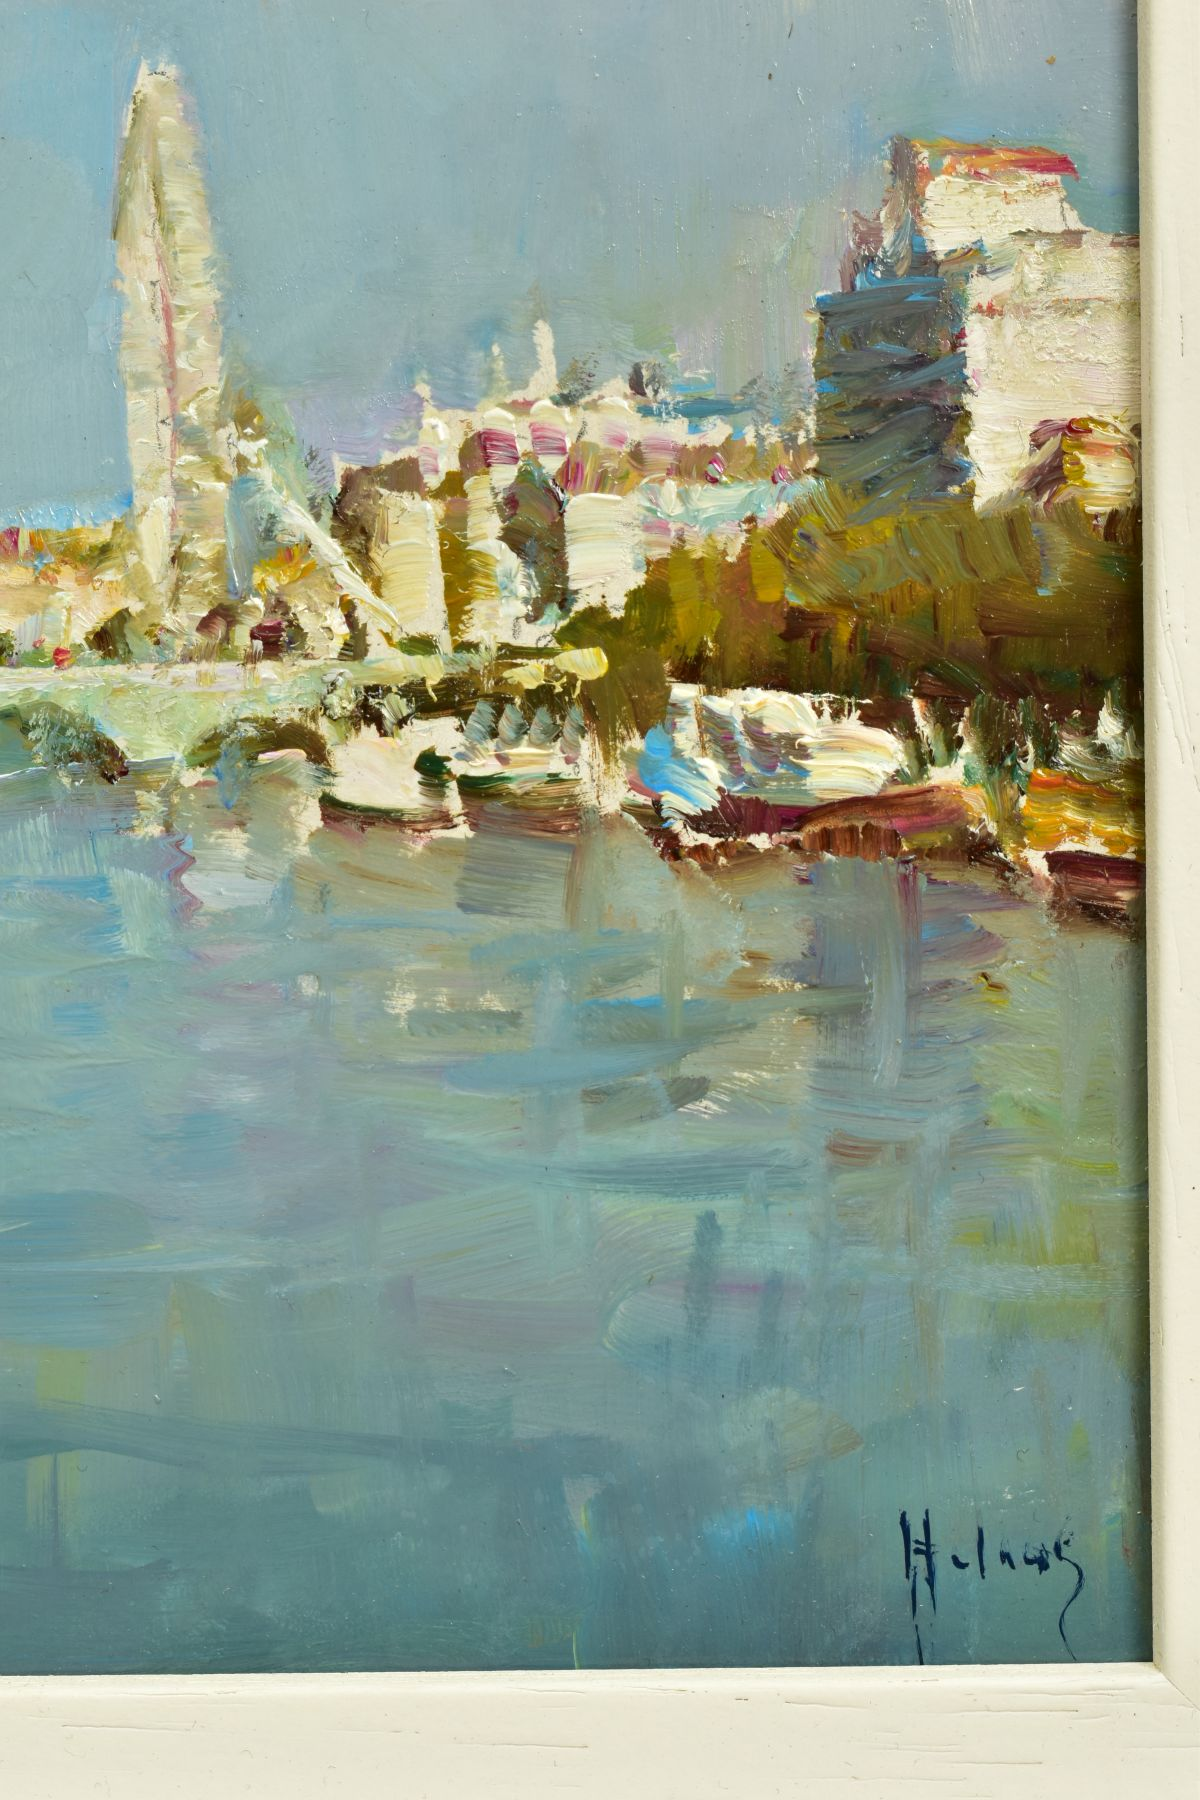 HELIOS GISBERT (SPANISH 1958), 'The Thames, London II', an impressionist view of a London skyline, - Image 4 of 5